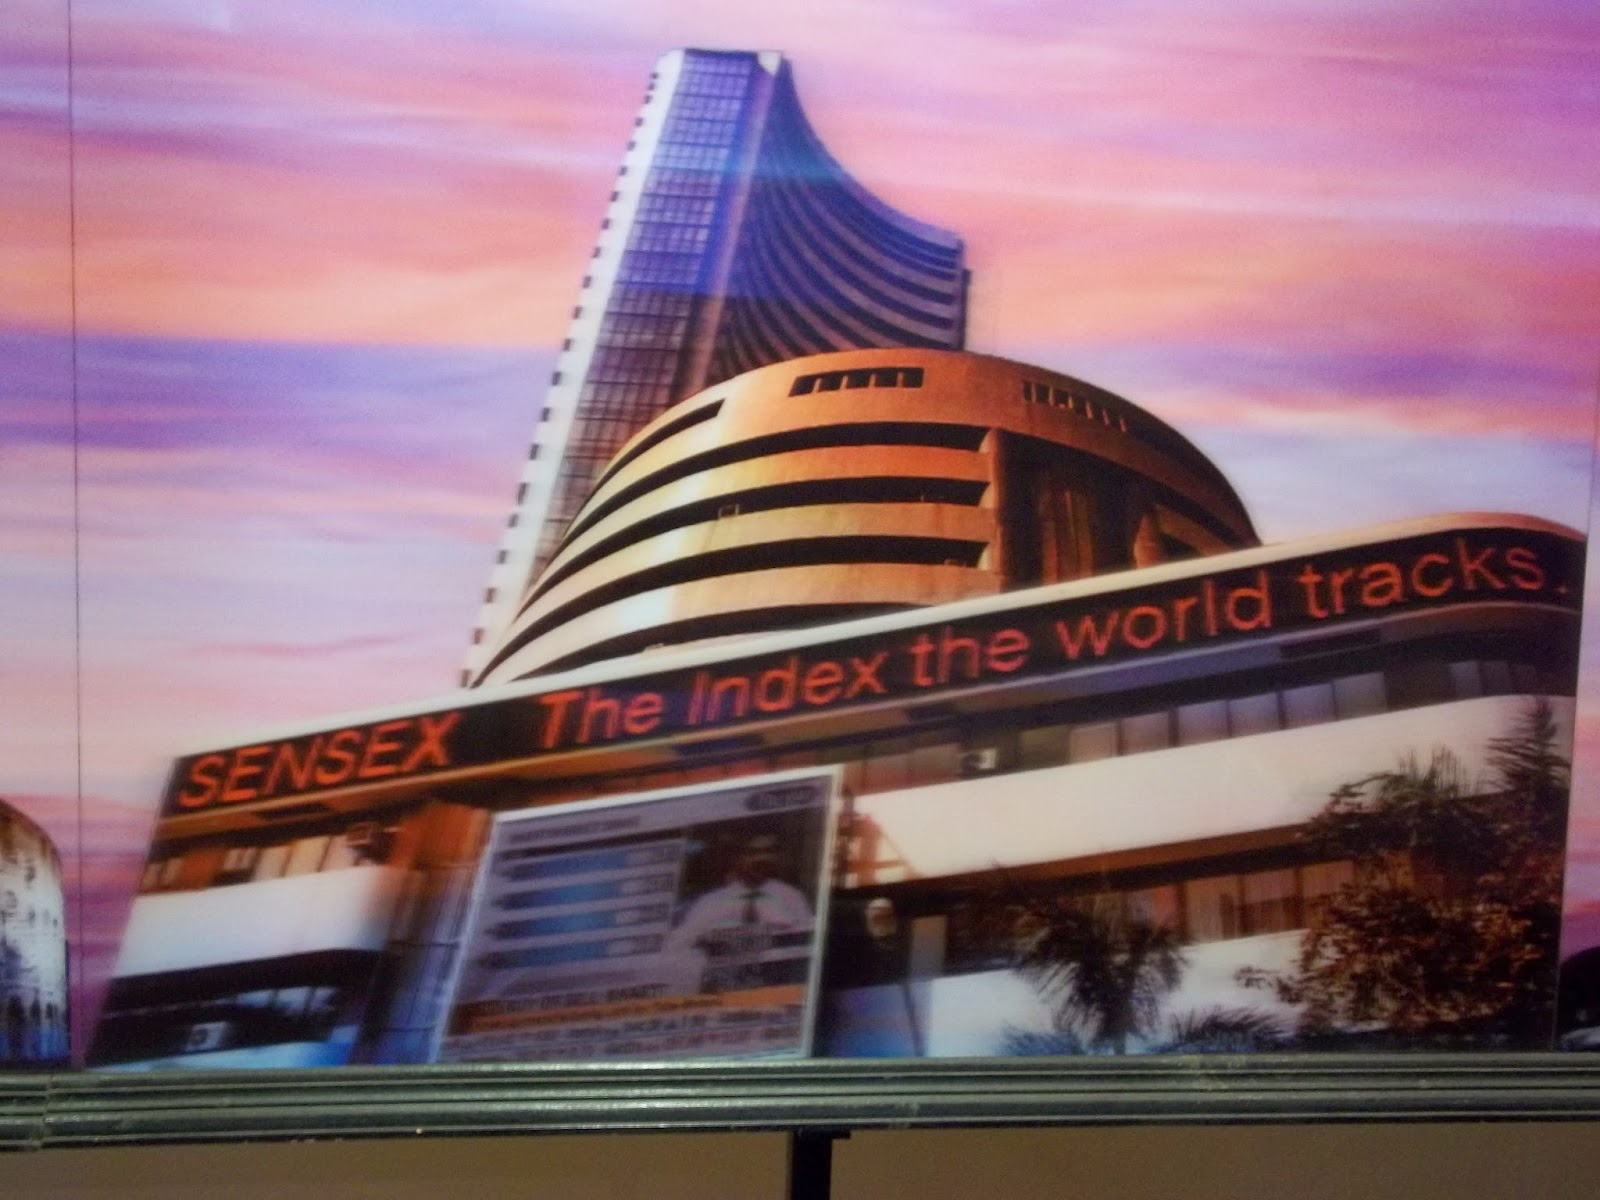 indian stock market Moneycontrol is india's leading financial information source for live stock price, stock/share trading news, stock/share markets tips, sensex, nifty manage your finance with our online investment.